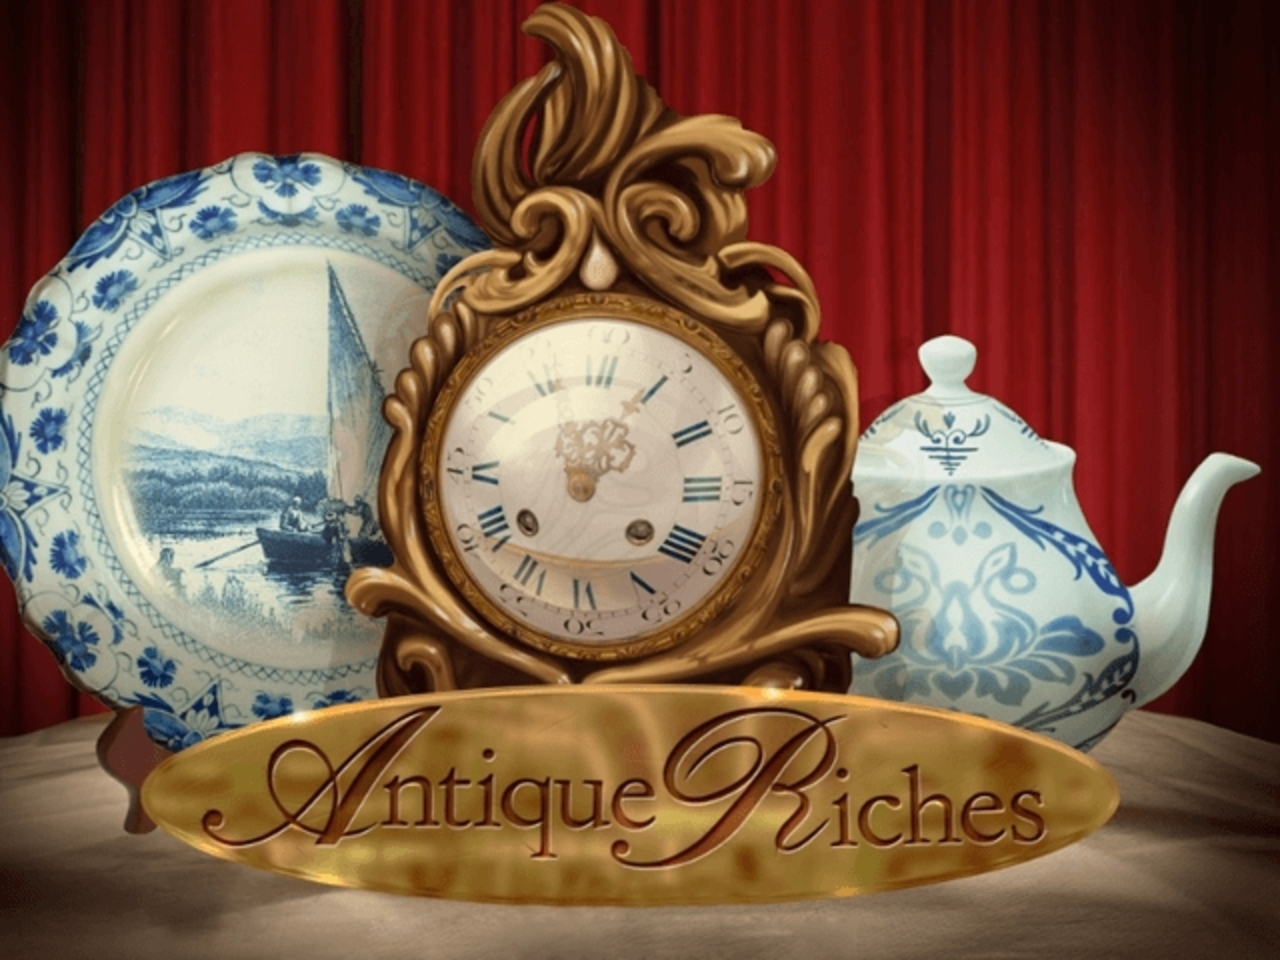 The Antique Riches Online Slot Demo Game by Genesis